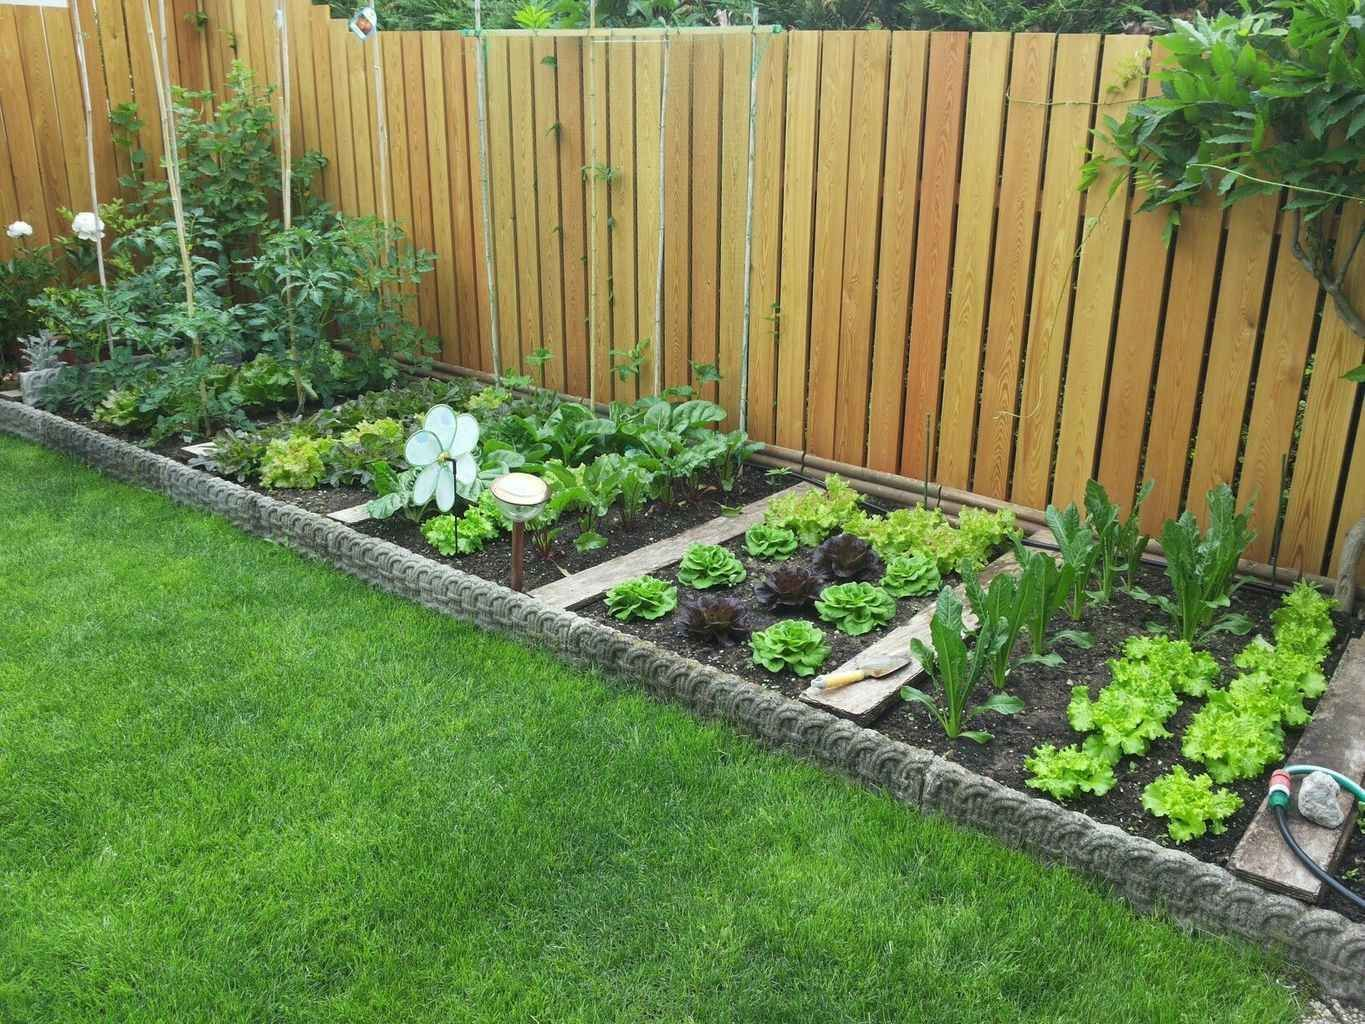 10 Awesome Backyard Vegetable Garden Design Ideas - Structhome.com